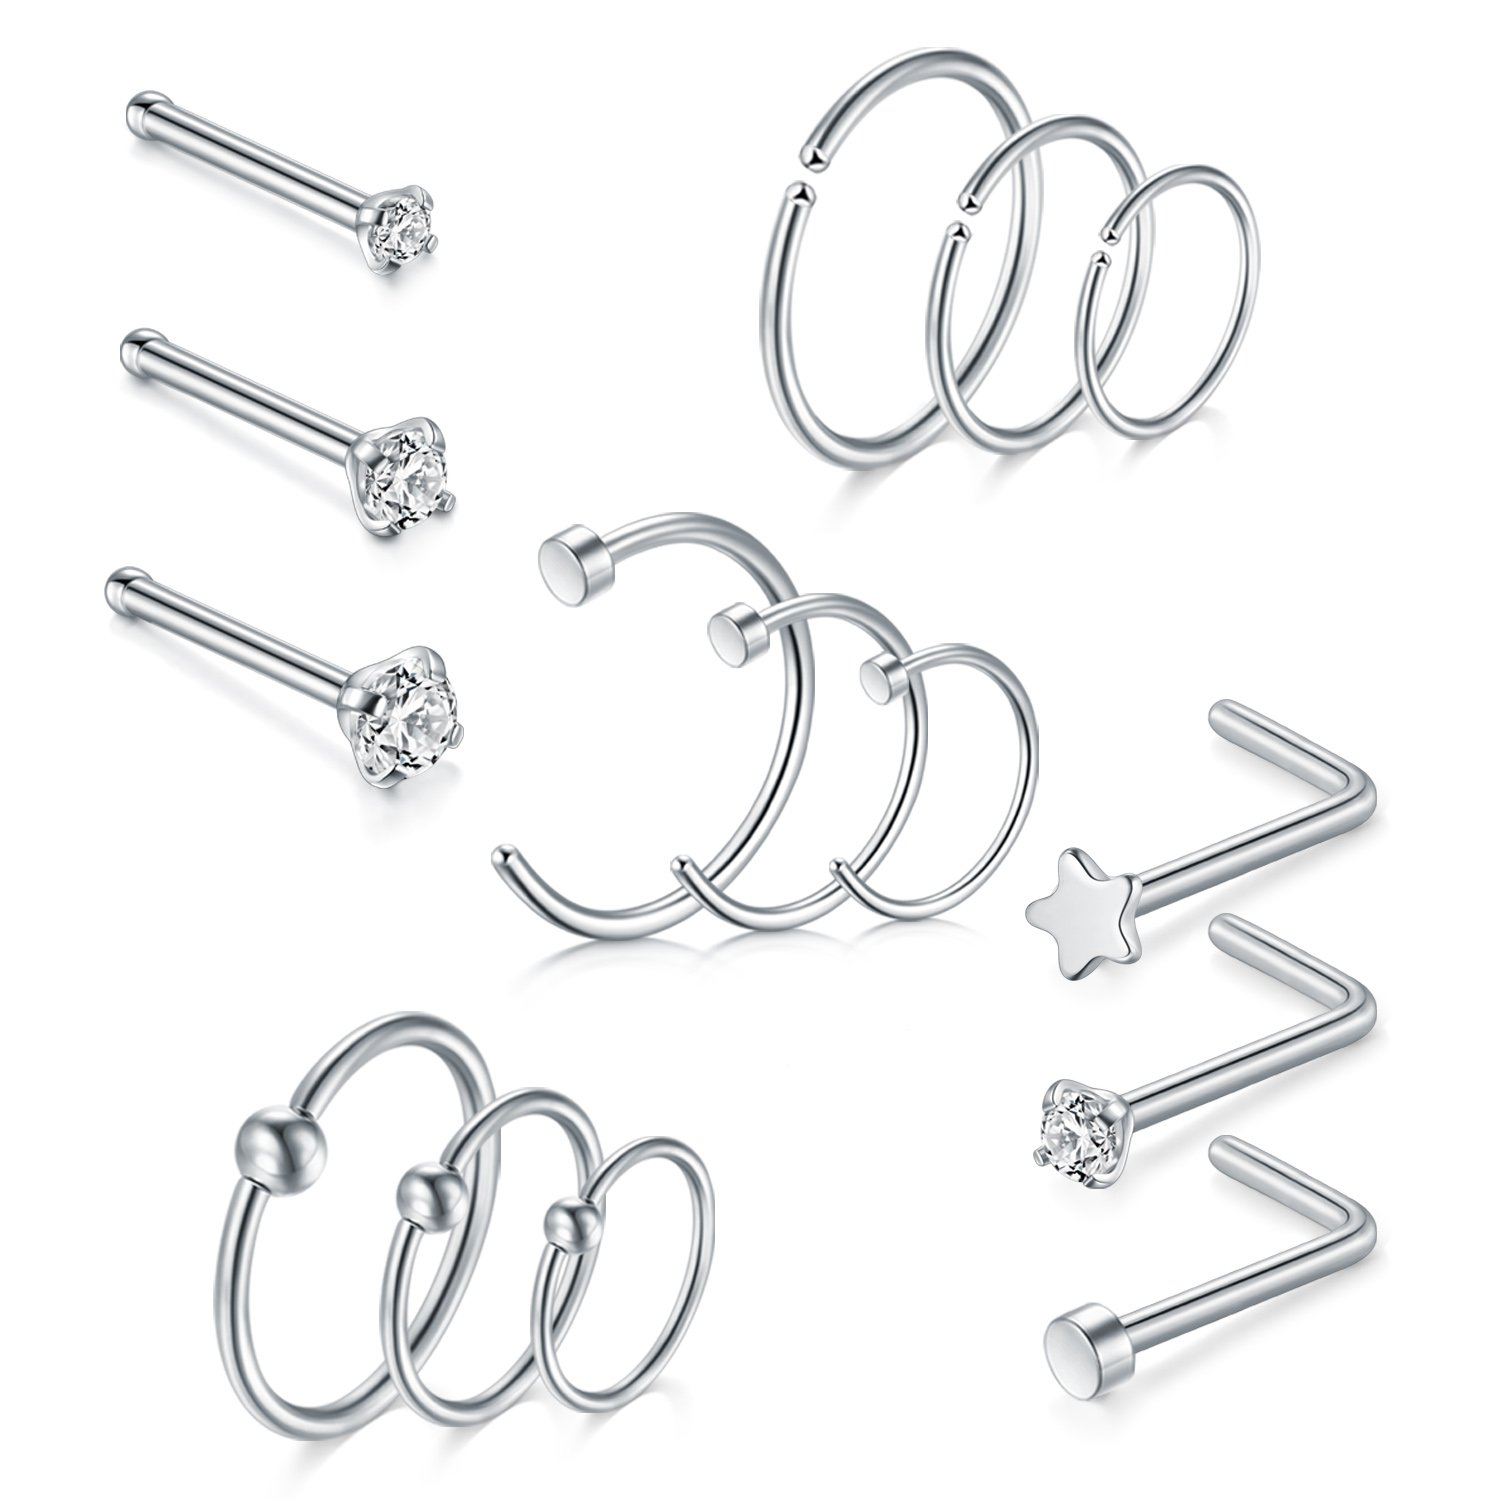 QWALIT 20G Nose Rings Hoop Stainless Steel L Shaped Nose Rings Studs CZ Inlaid Bone Pin Straight Nose Piercing Jewelry 15pcs